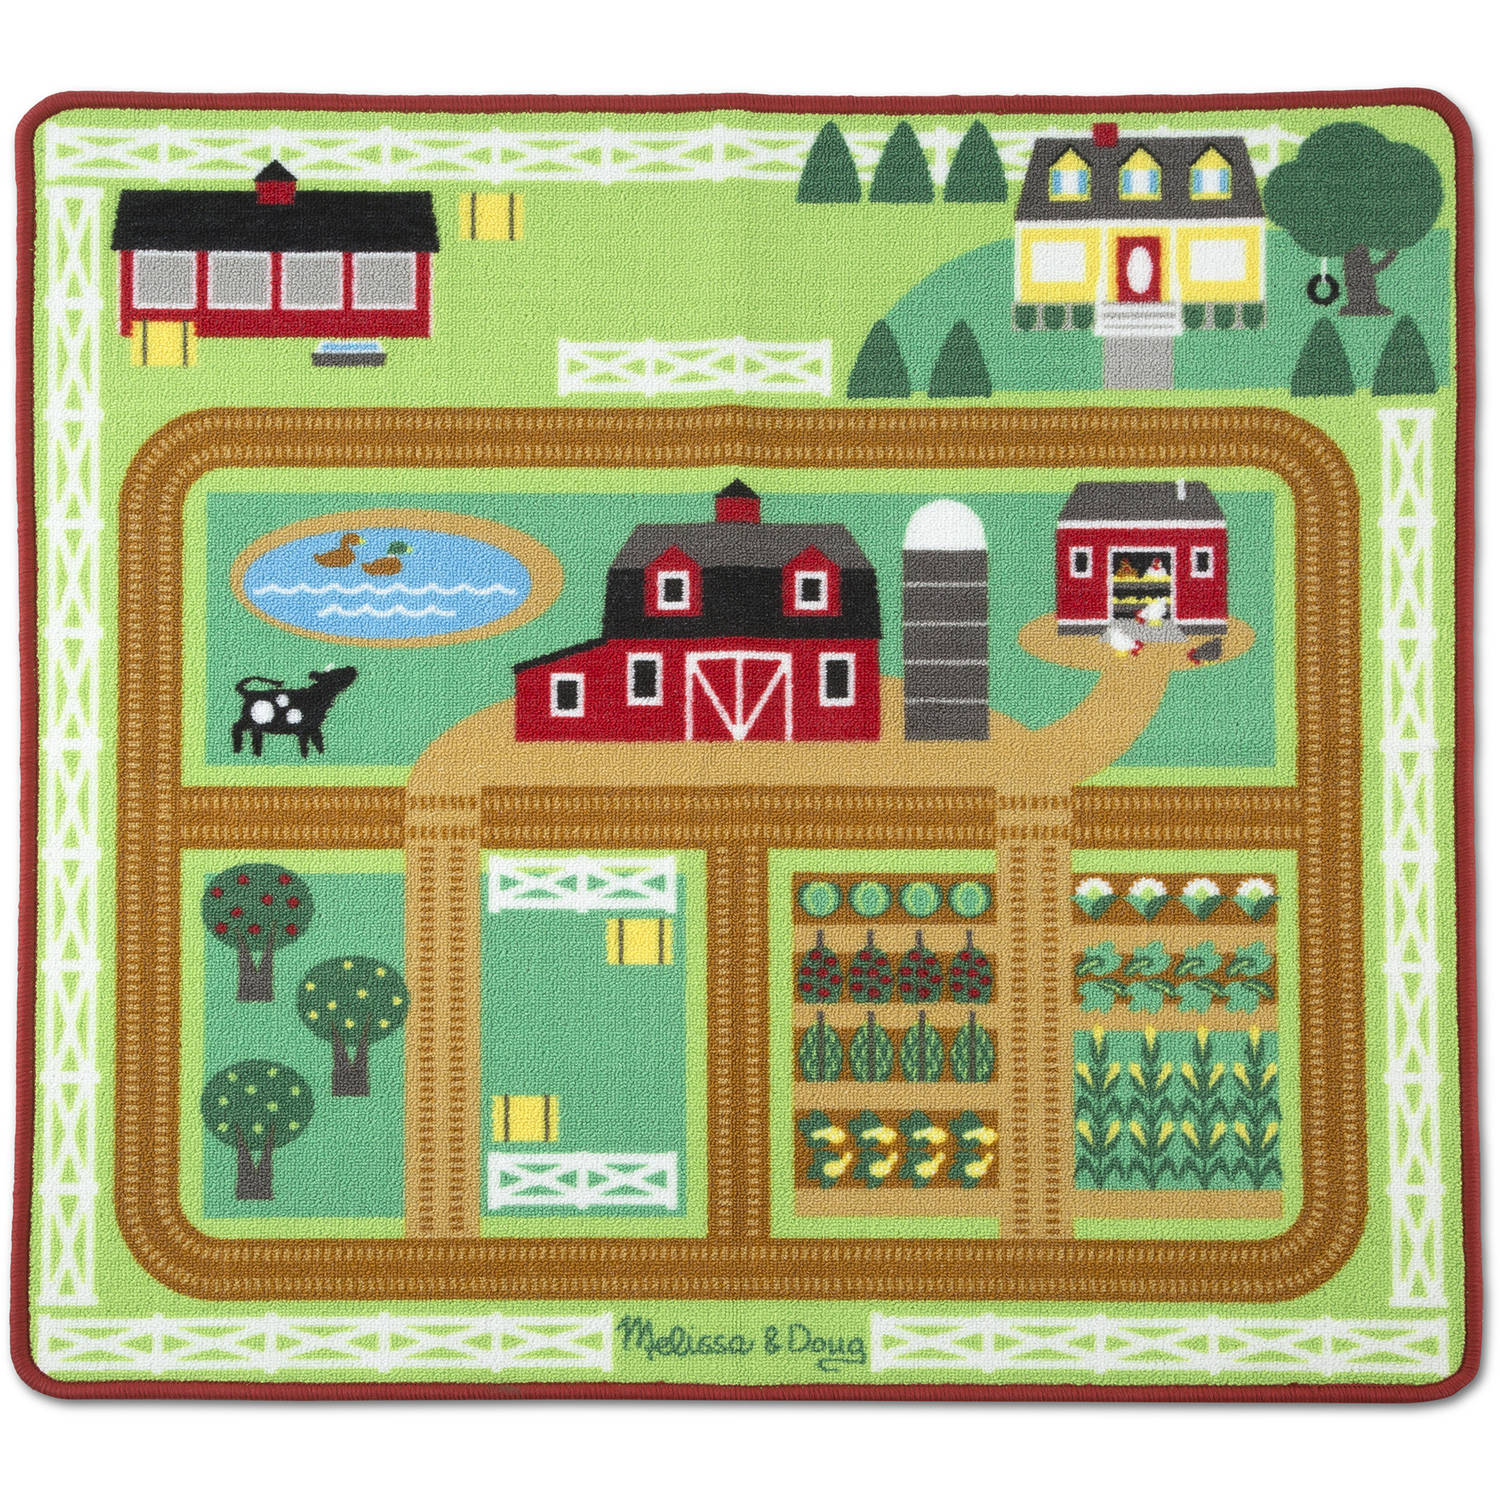 "Melissa and Doug Round the Barnyard Farm Activity Play Rug Wooden Tractor, Trailer, 3 Toy Animals, 39"" x 36"""